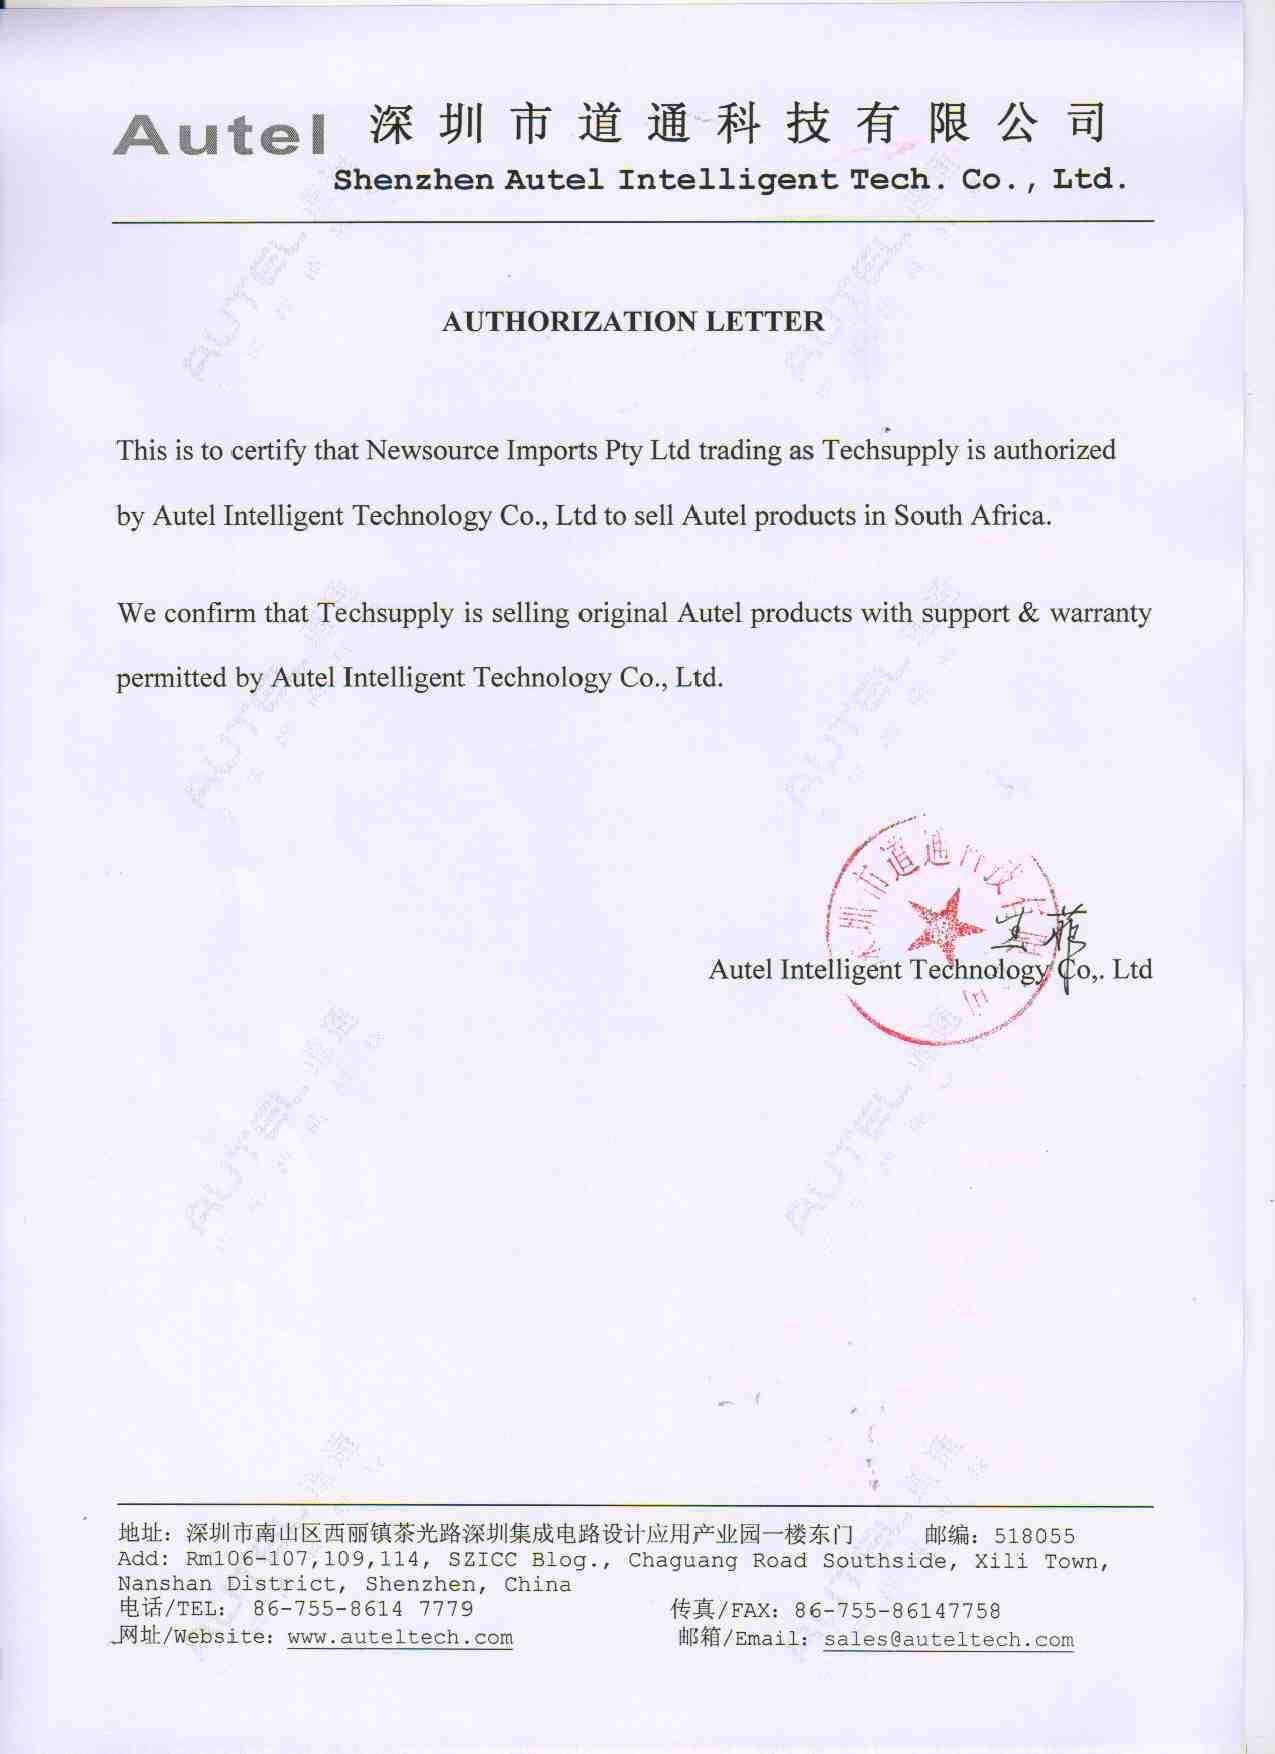 Authorization letter sample birth certificate for nso documents authorization letter sample birth certificate for nso documents letters thecheapjerseys Gallery